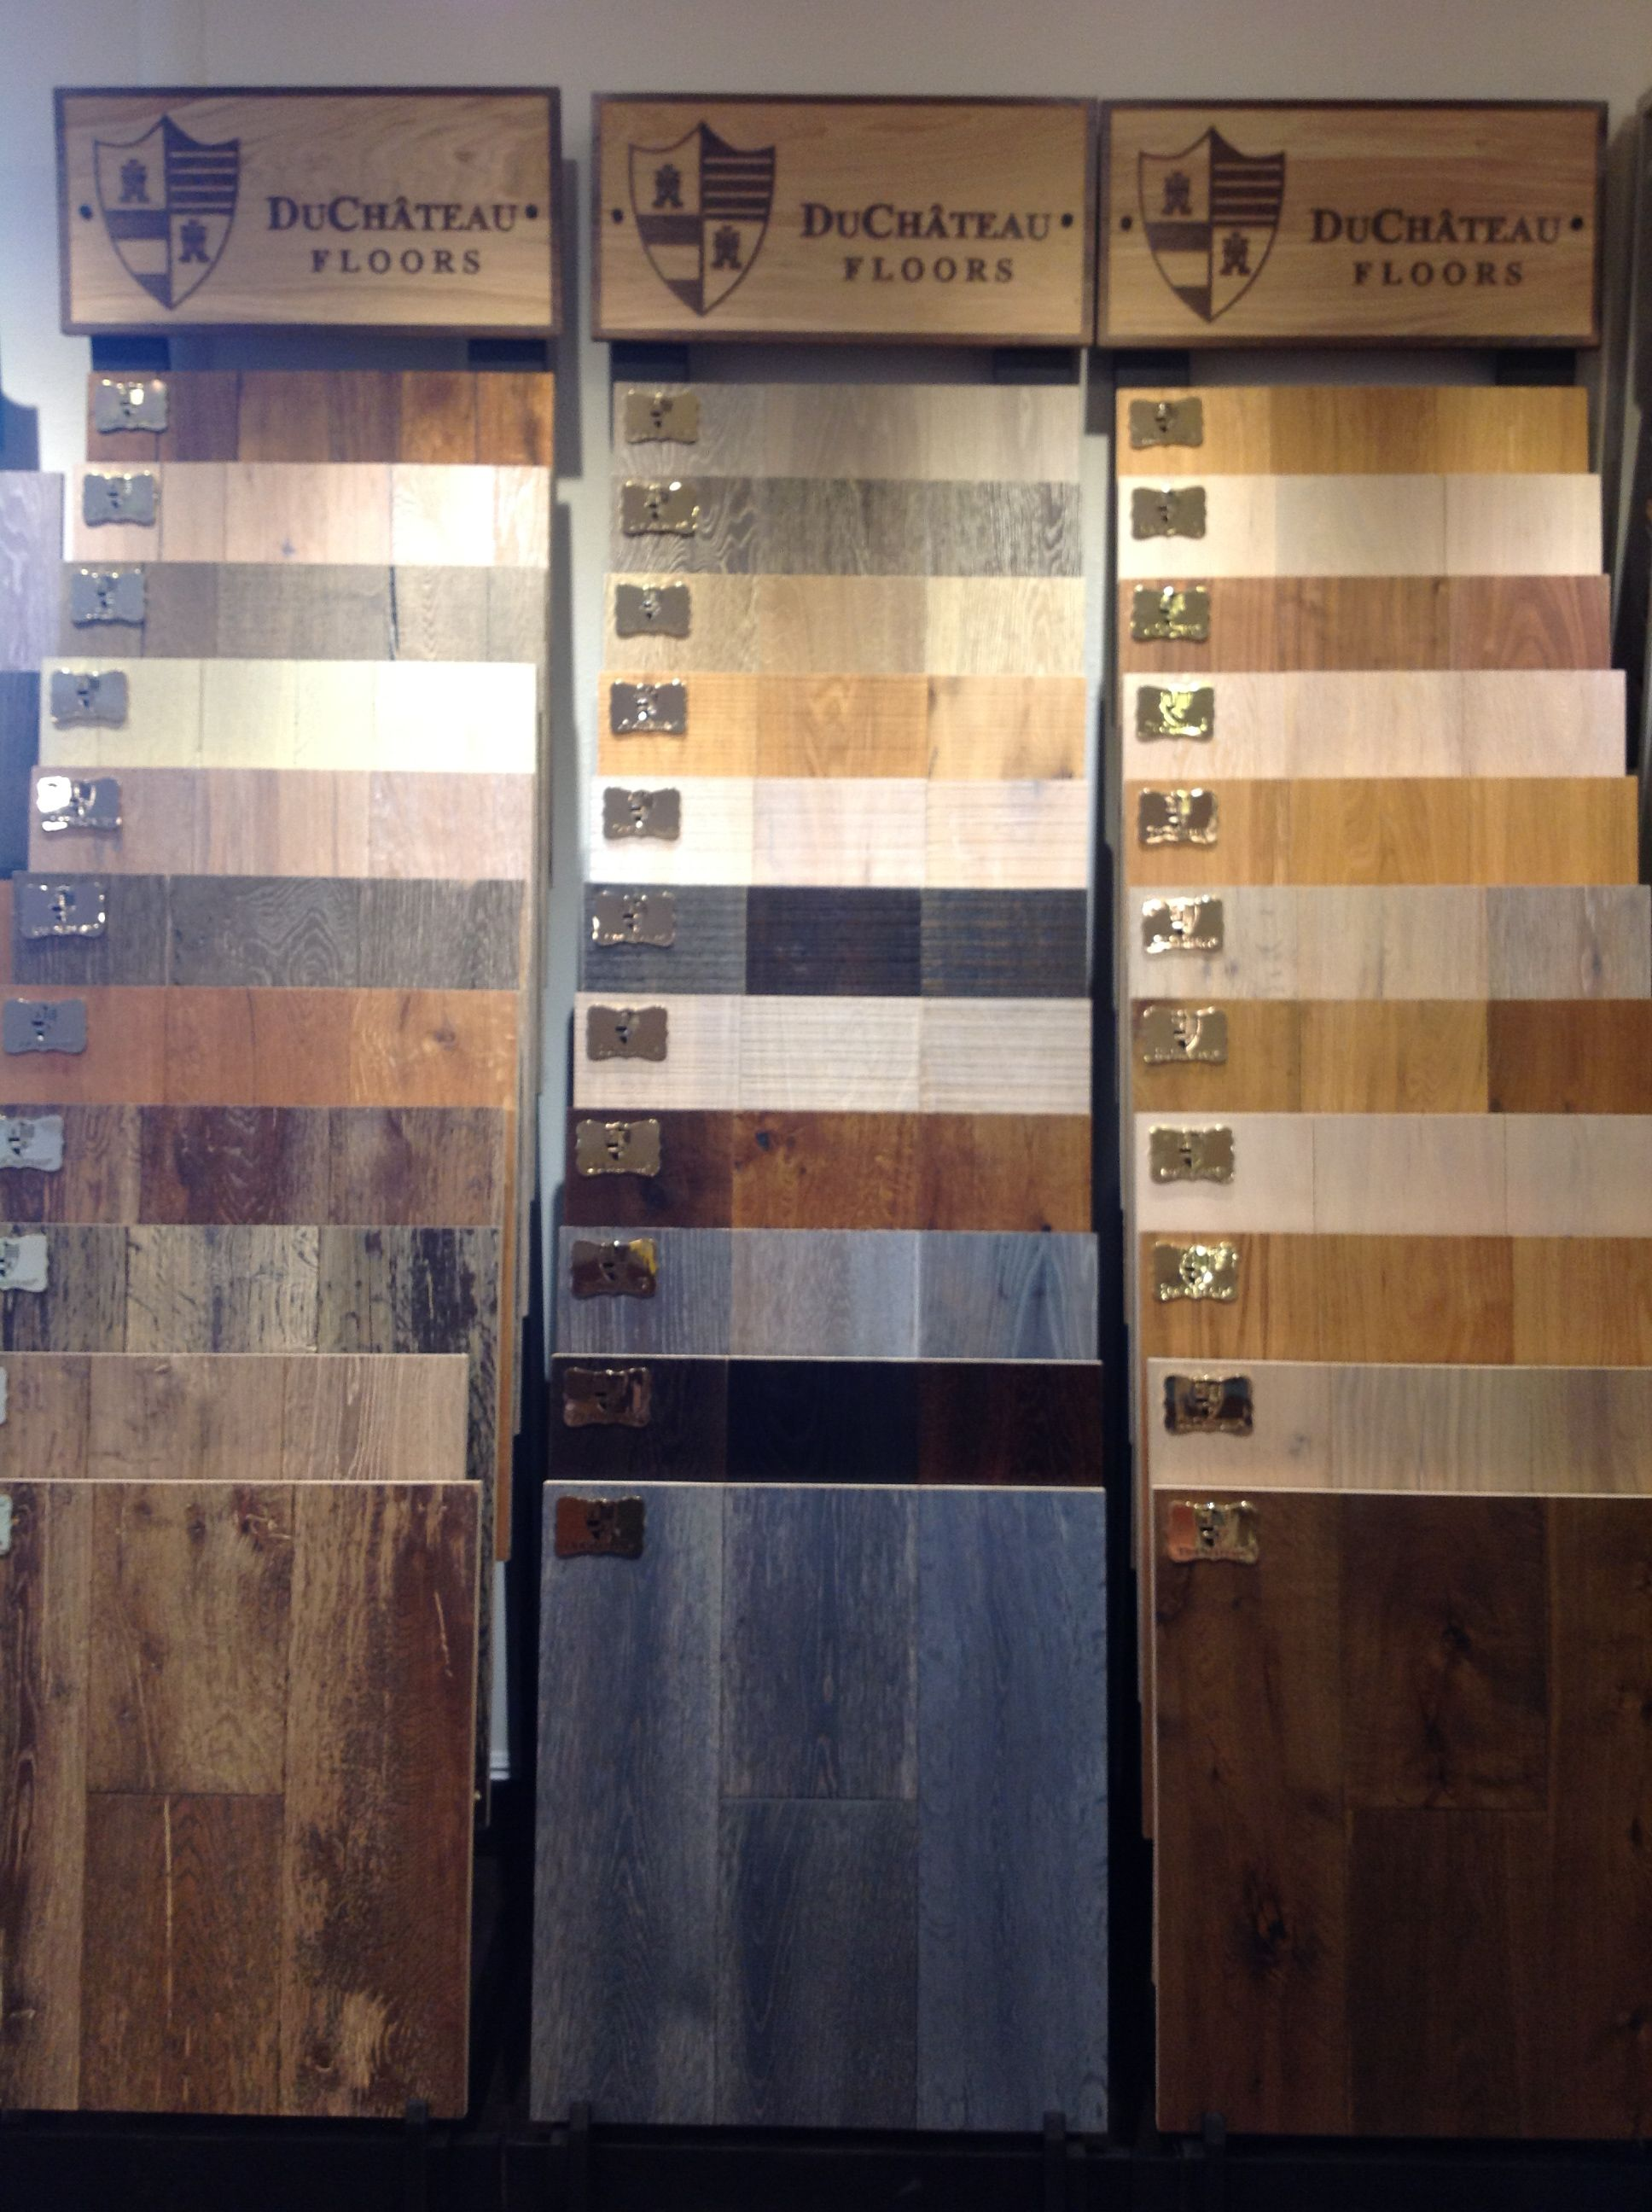 Pin By Jr789 On Our Selection Of New Flooring Installation Floor Installation Flooring Wood Floors